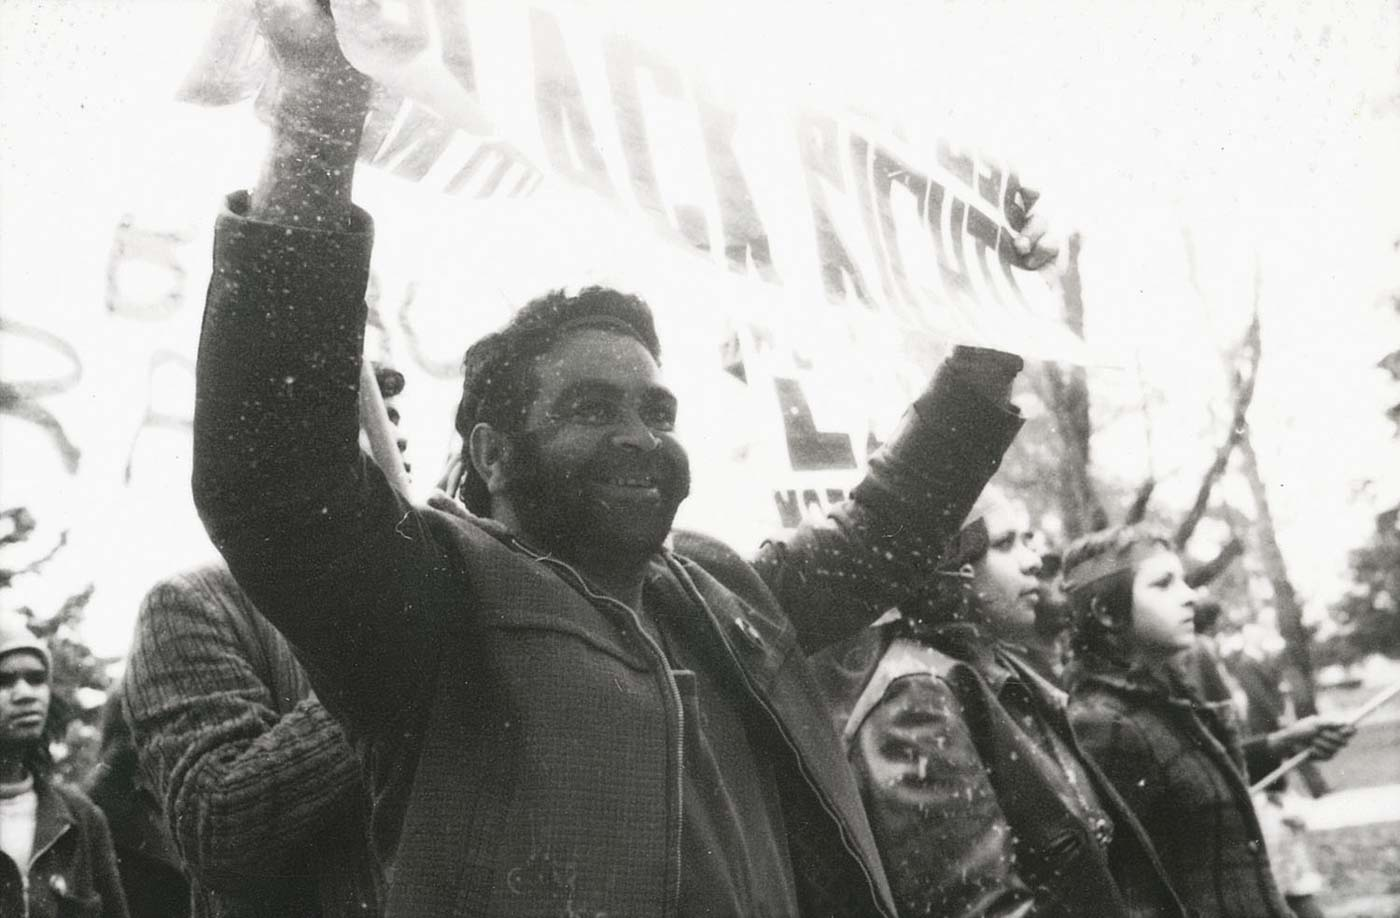 Black and white photo of a protest march with banners.